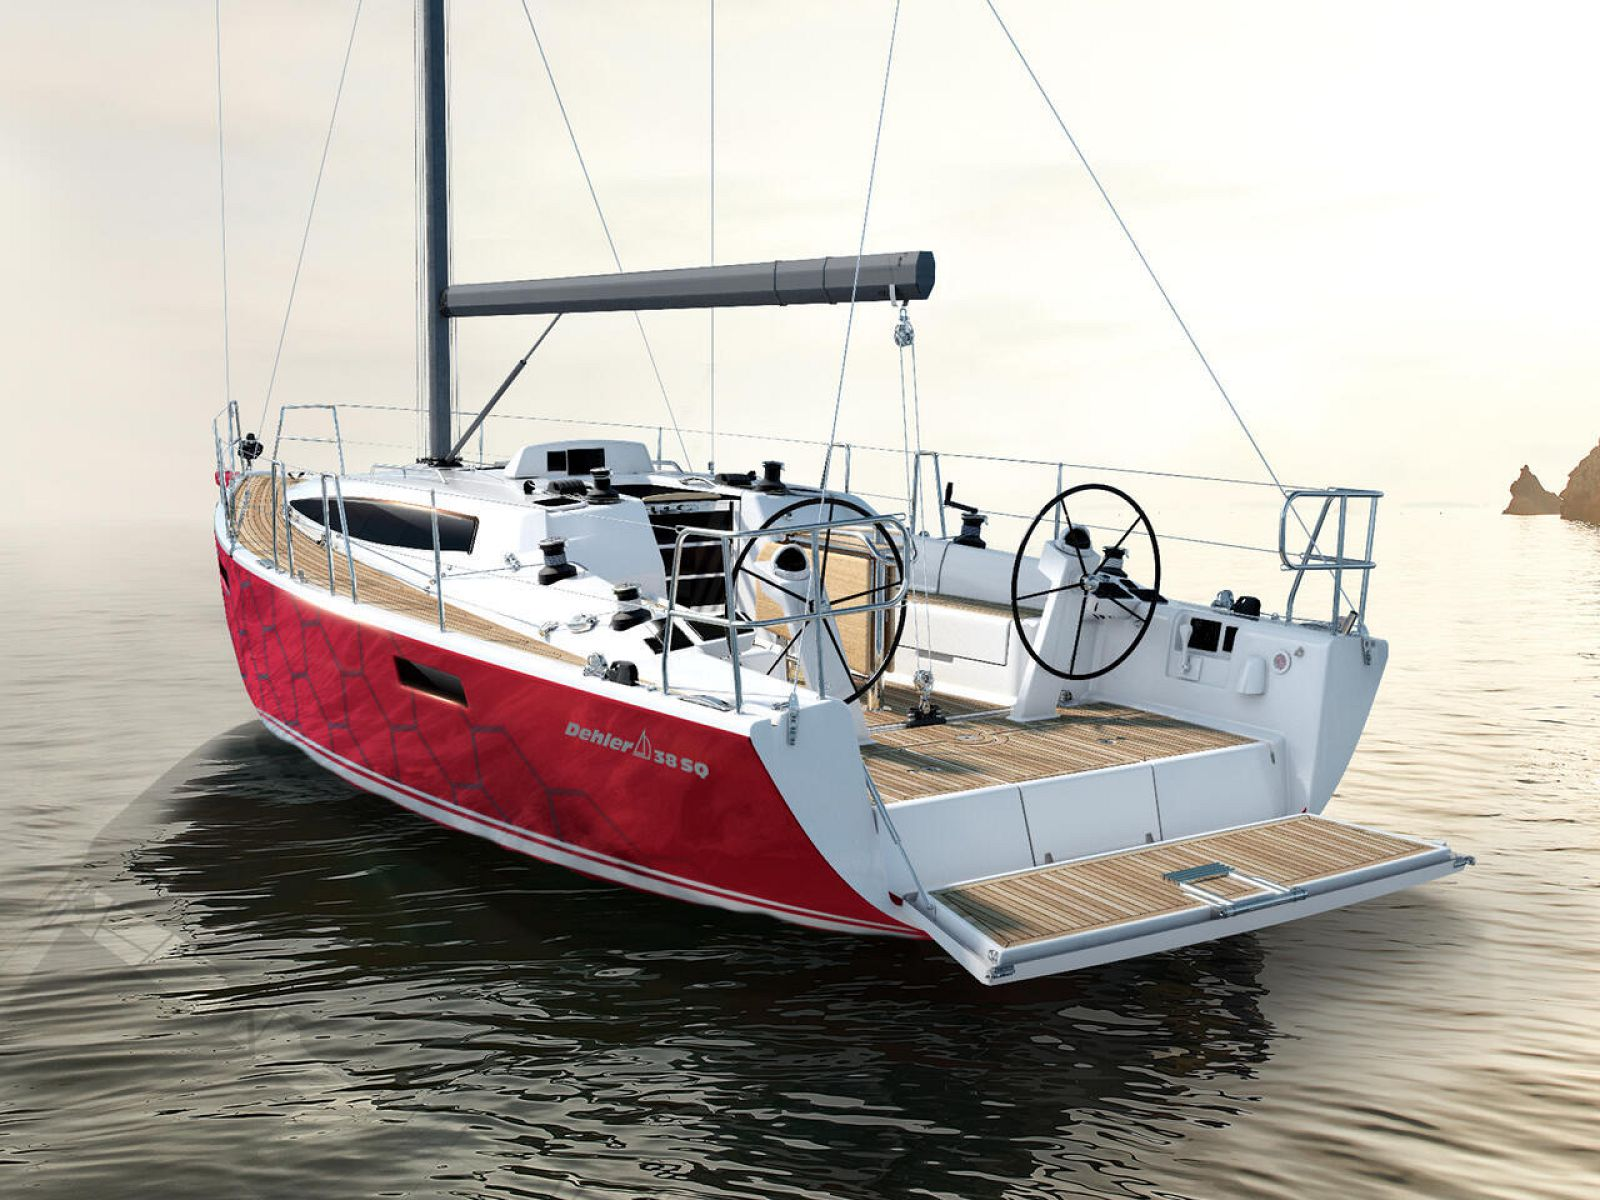 Transom of Dehler 38SQ